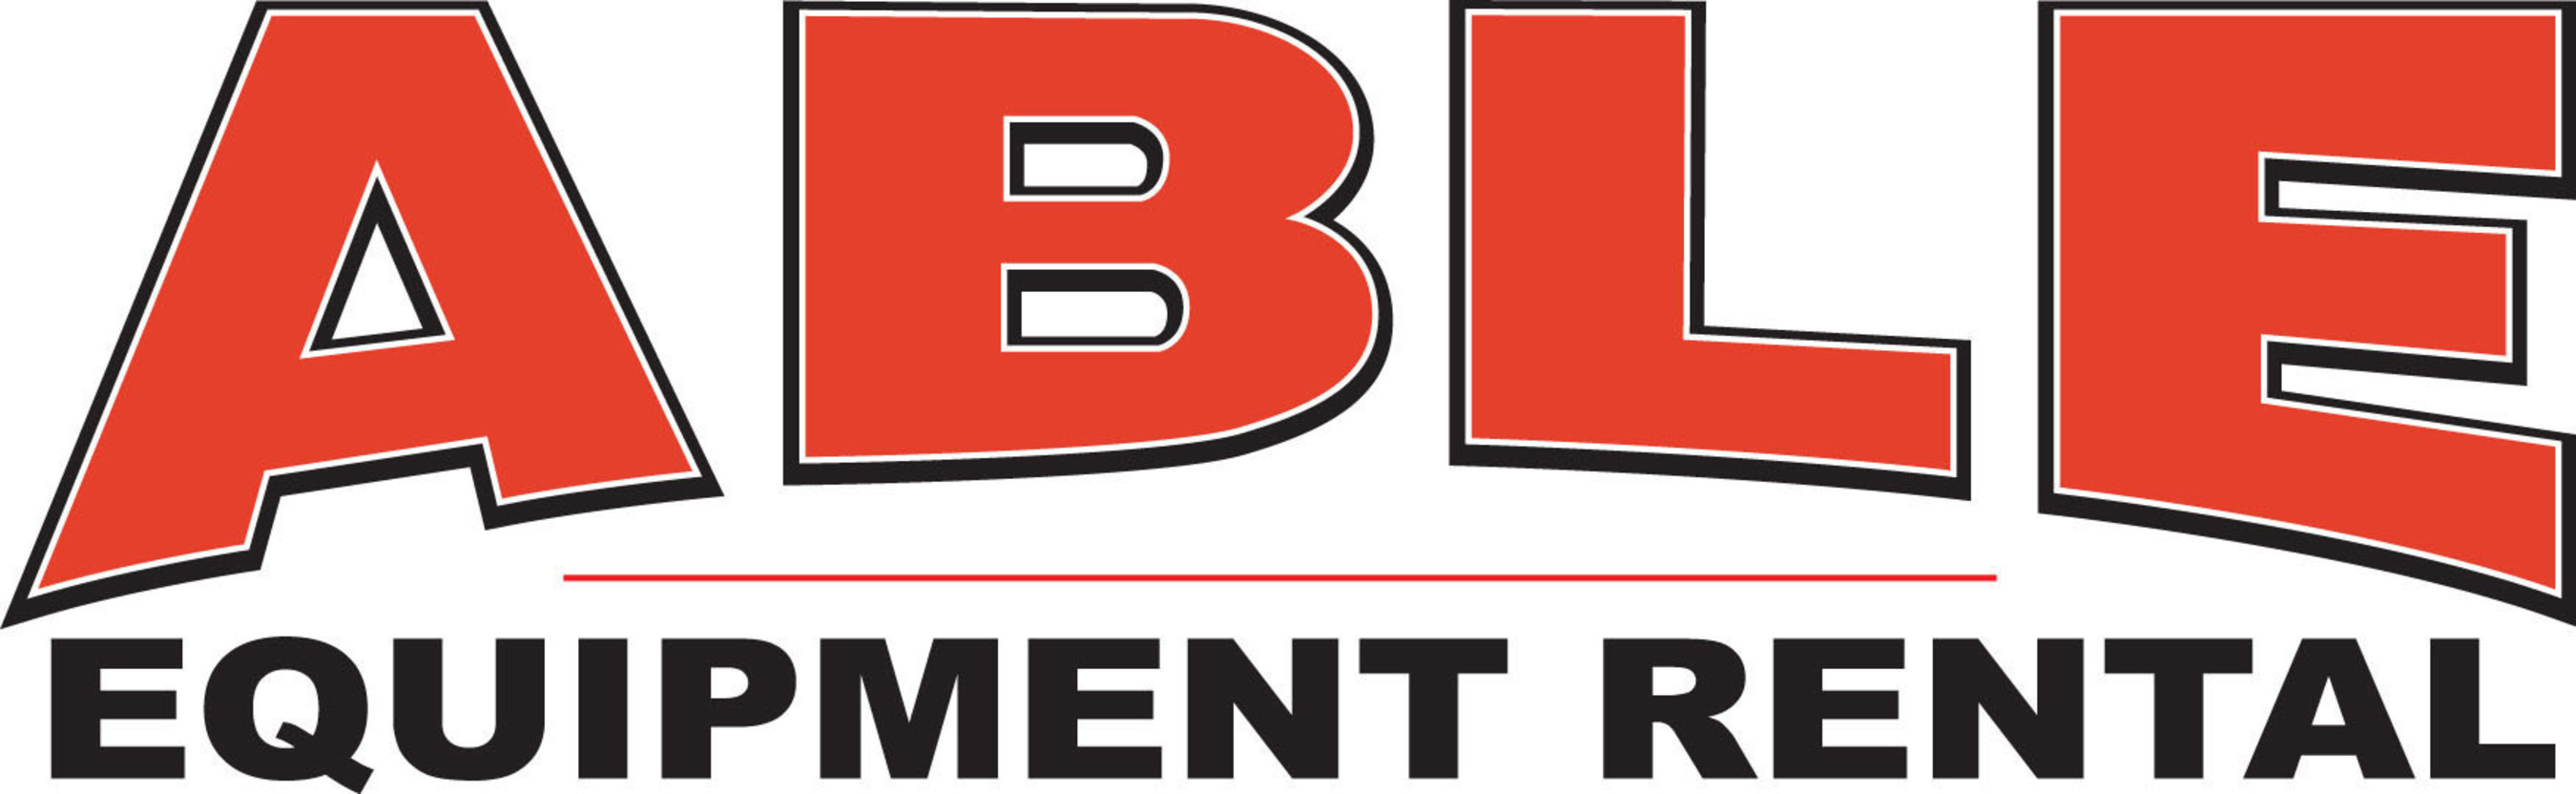 ABLE Equipment Rental of Deer Park, NY has purchased the Aerial Work Platform assets of Altitude Equipment Rentals, a subsidiary of Platinum Maintenance Services Corp. in NYC. ABLE Equipment Rental provides construction equipment rentals, sales, service, and parts for the NYC metro area, as well as NJ, PA, and Delaware.